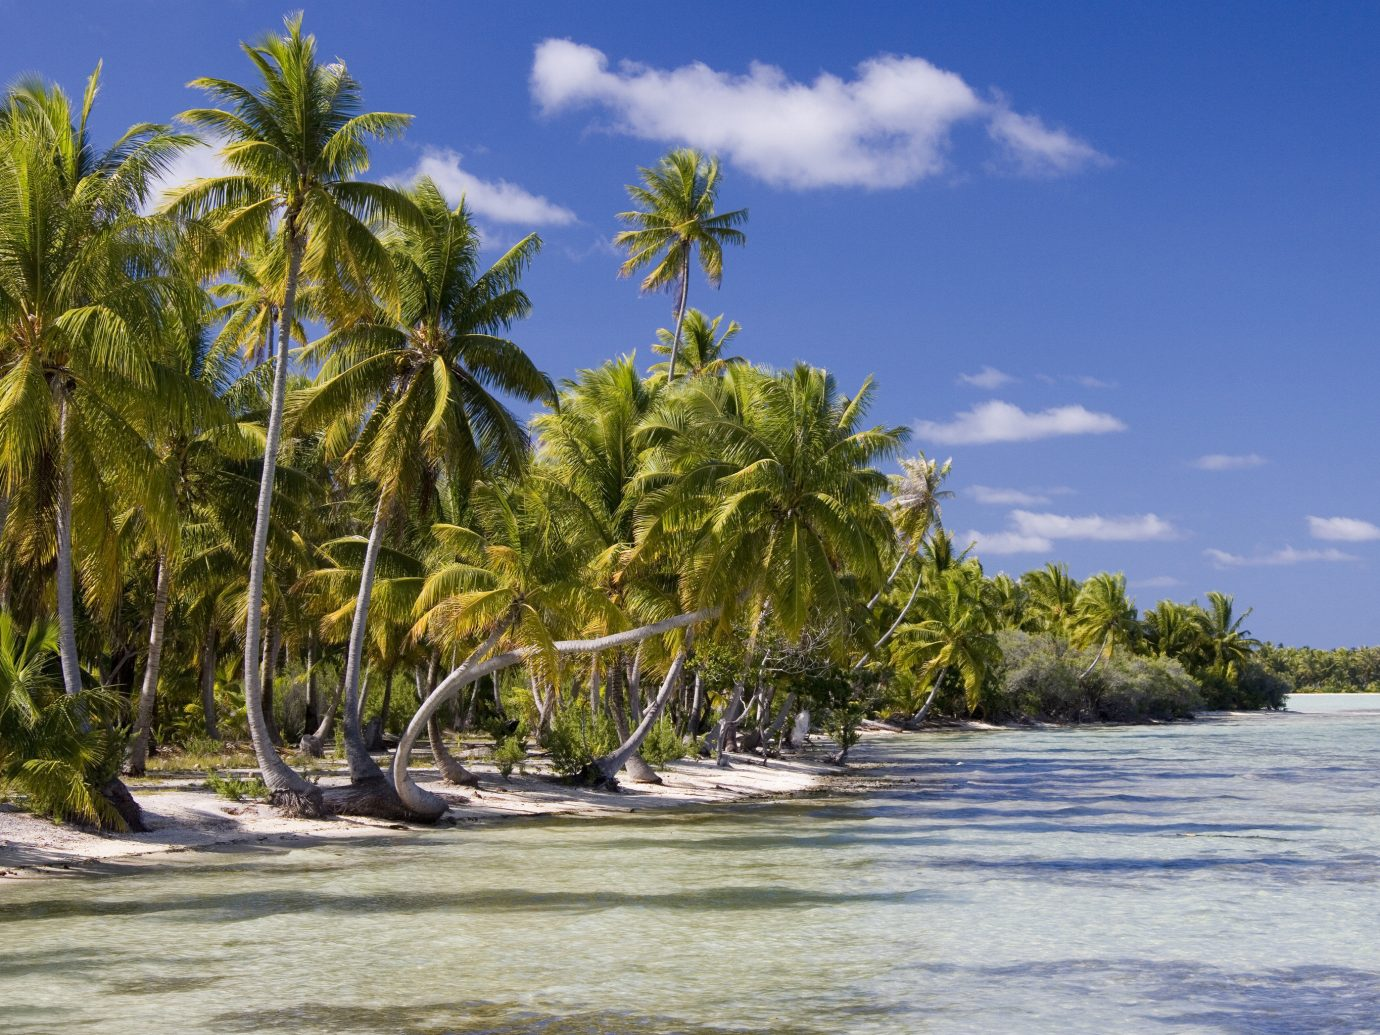 Islands Trip Ideas tree outdoor sky geographical feature shore landform body of water Beach plant Sea Coast River arecales tropics vacation Ocean bay caribbean Island Nature Lagoon vehicle palm family palm sandy